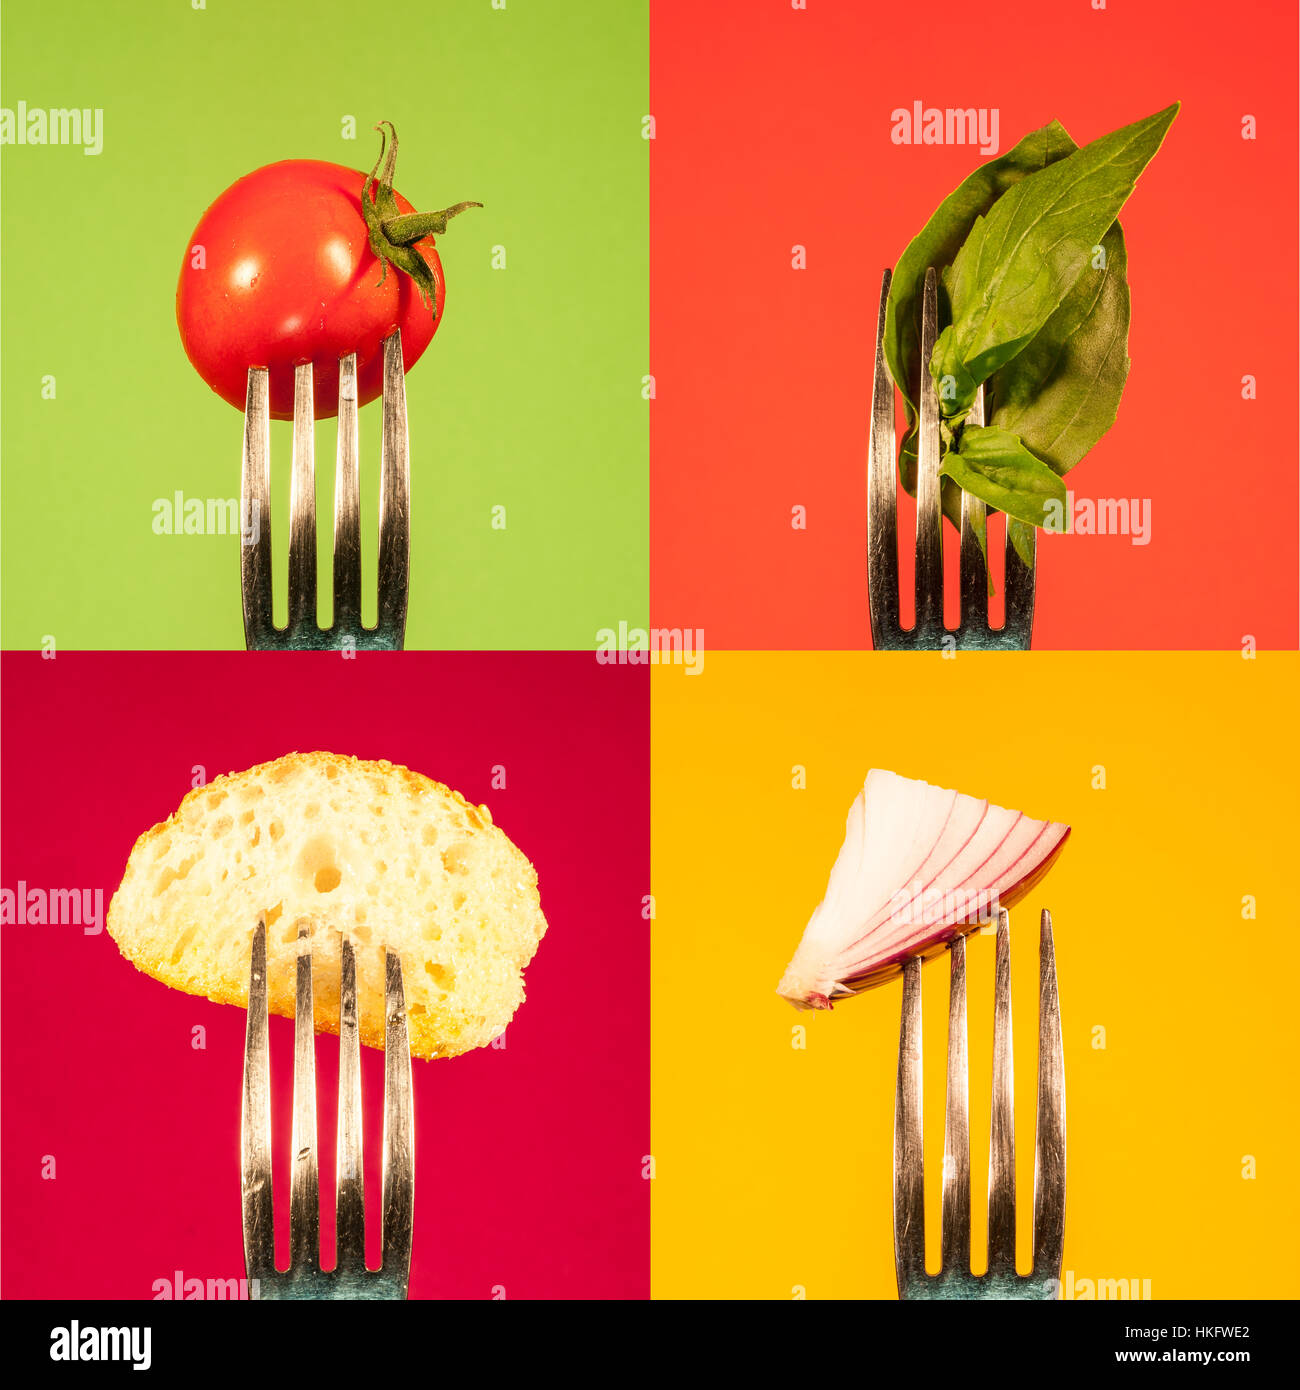 Tomato onion basil bread on forks arranged in squares on colourful background - Stock Image